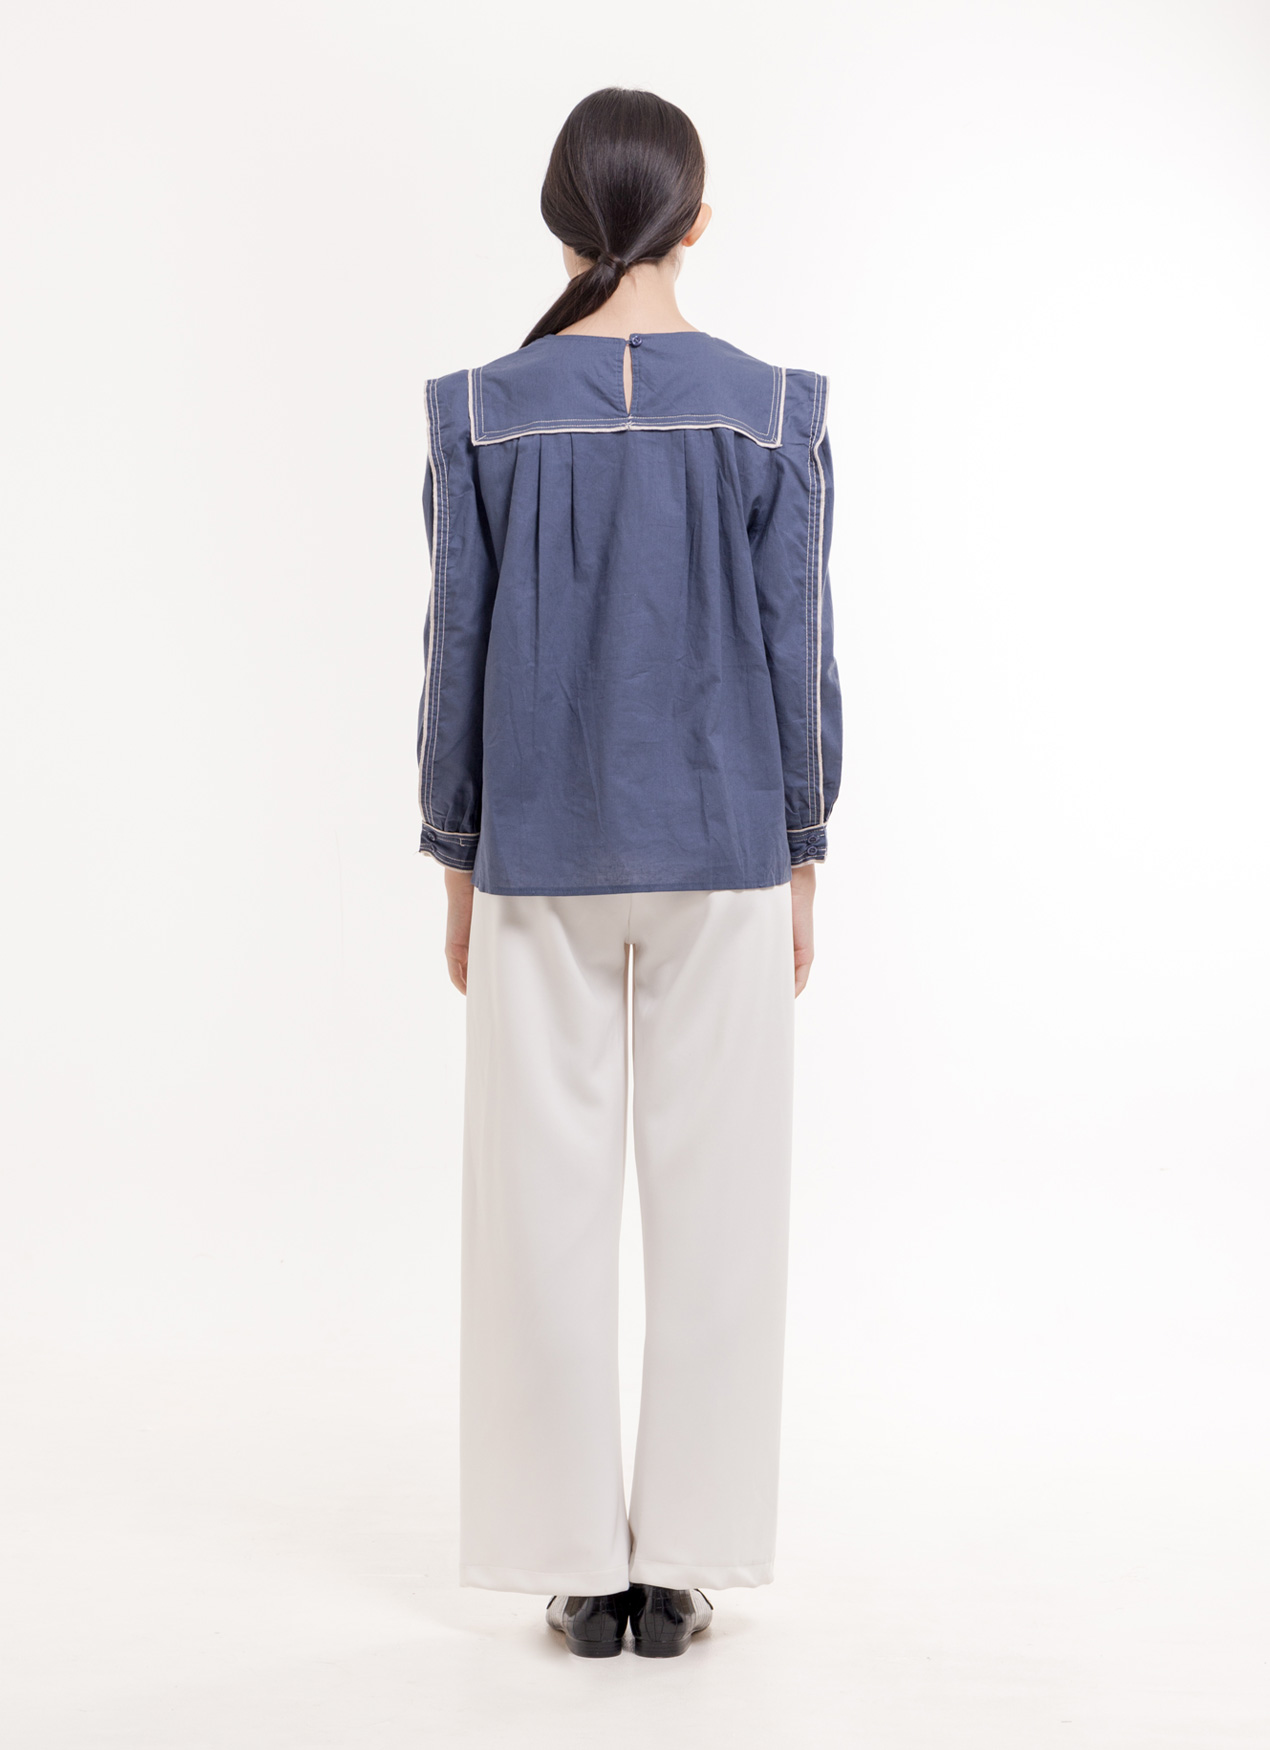 BOWN Cosette Top - Blue